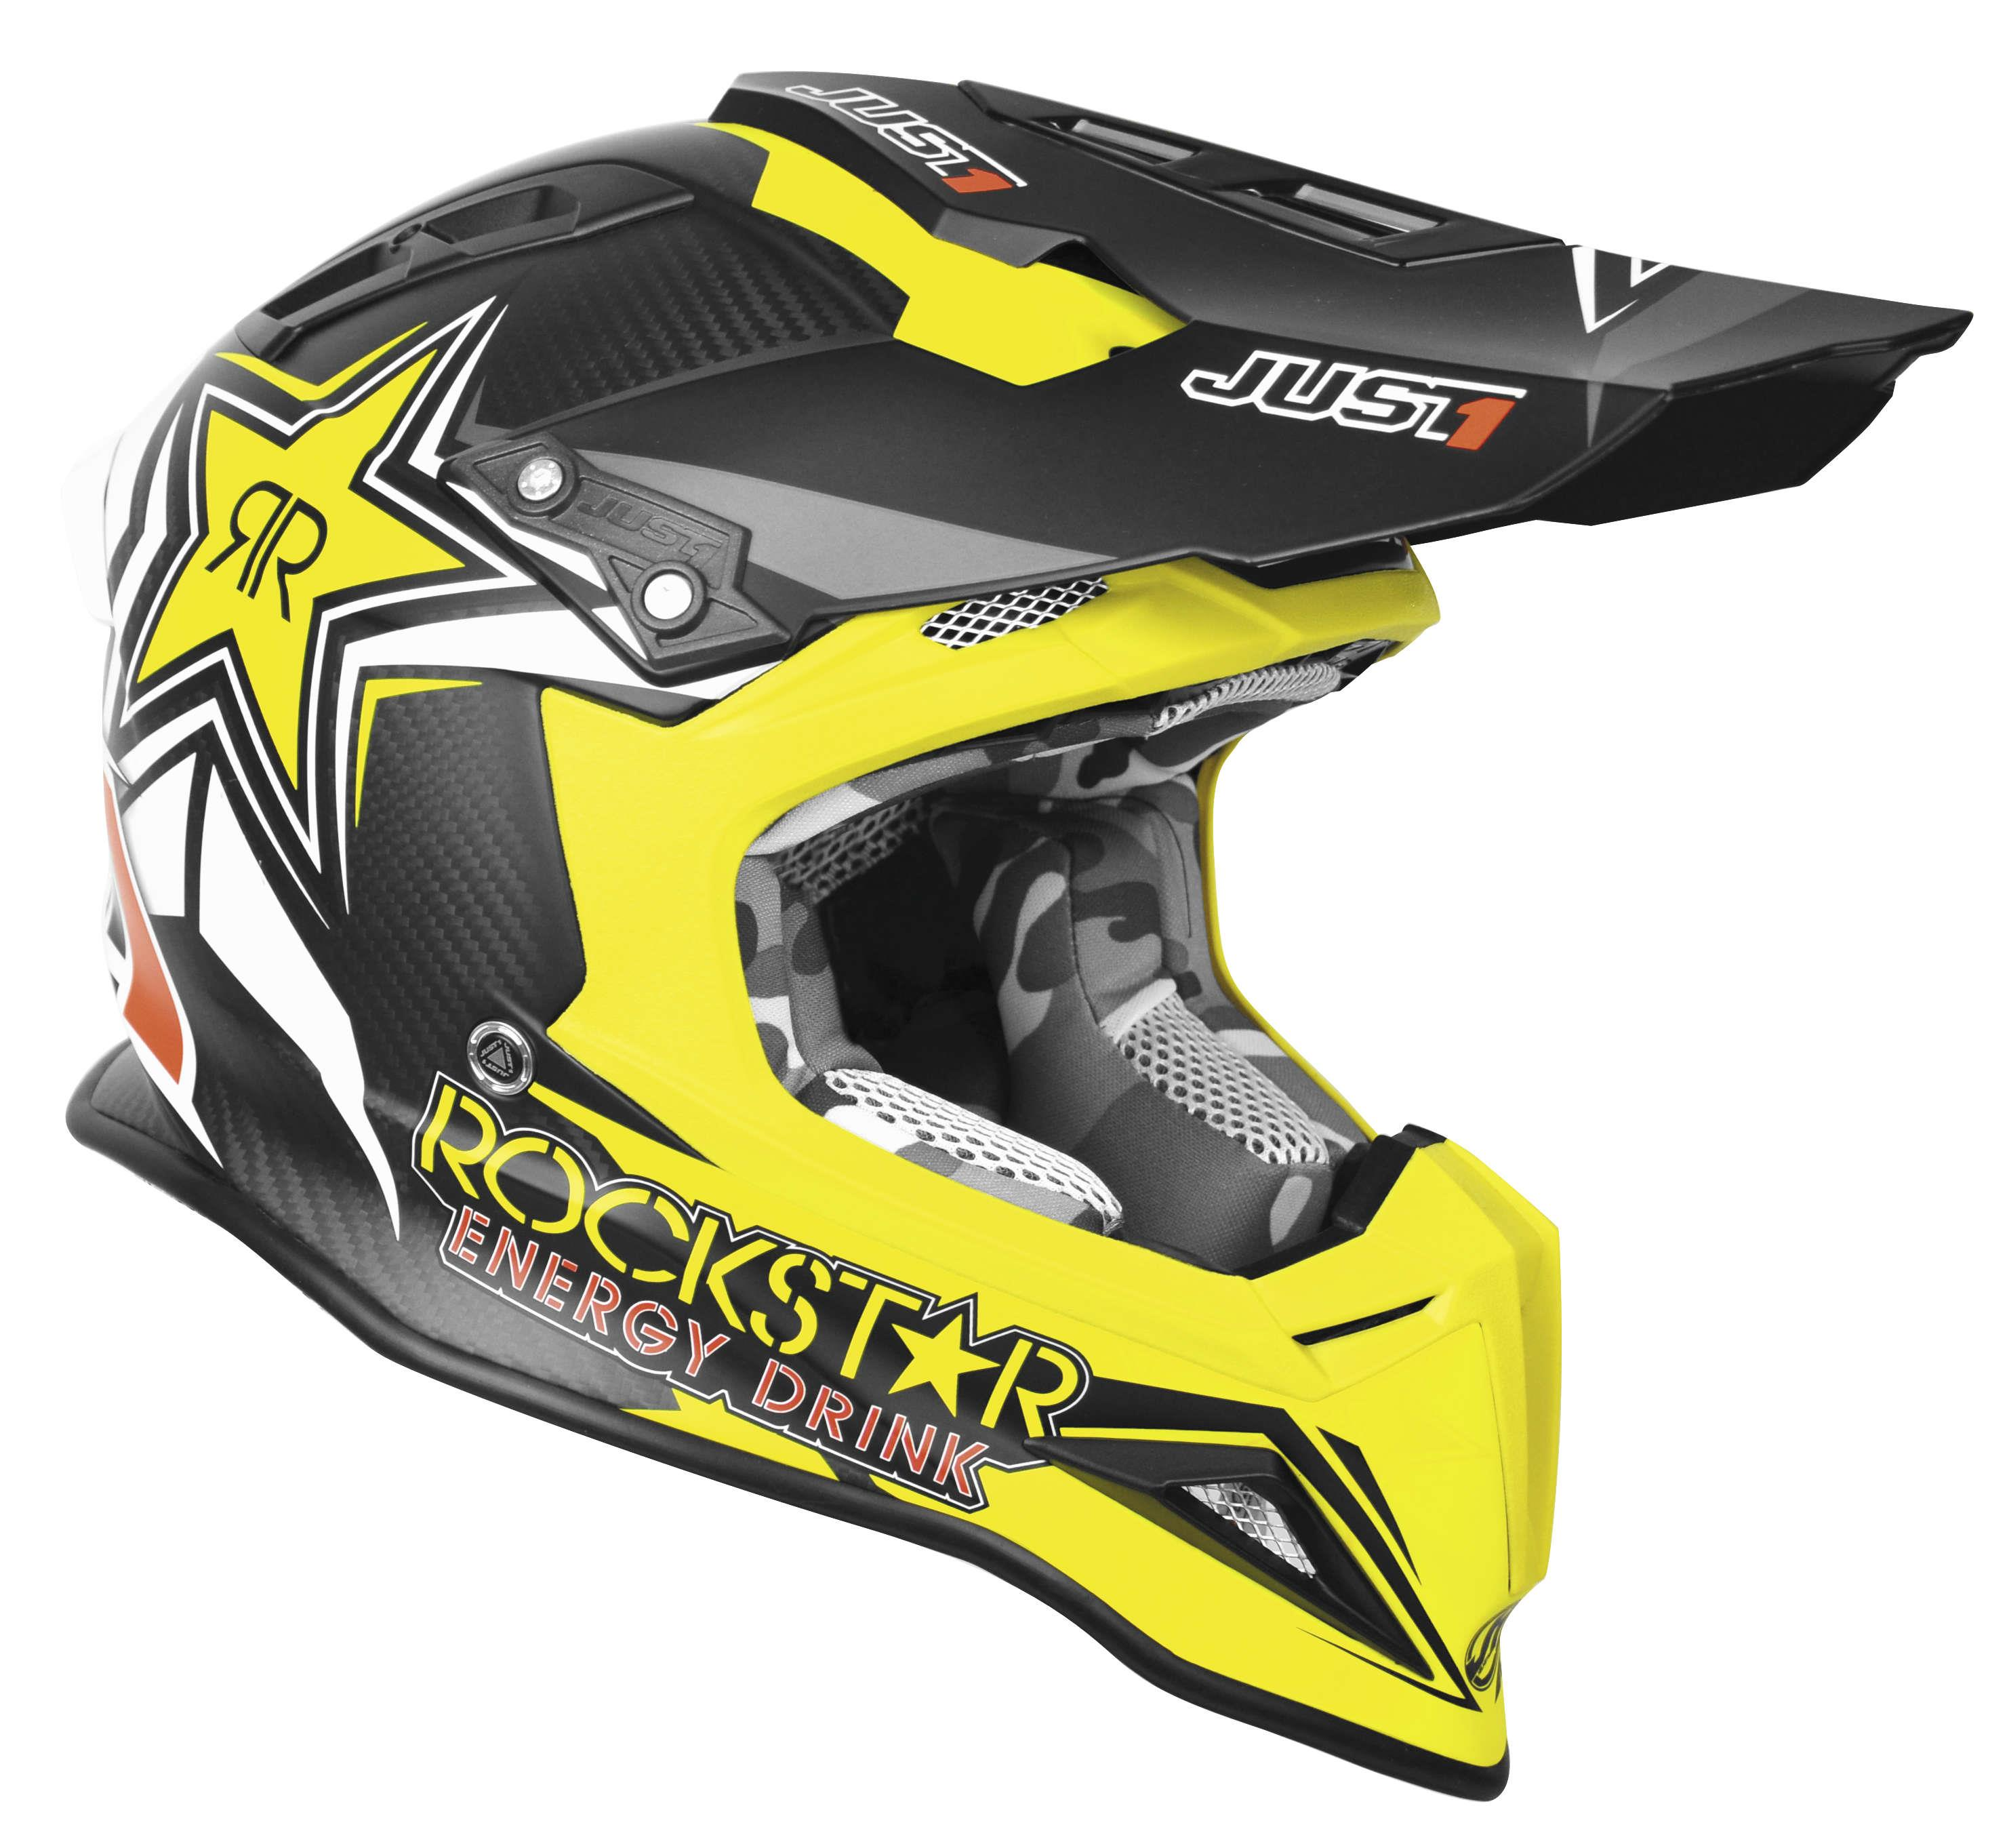 Just 1 J12 Rockstar Helmet